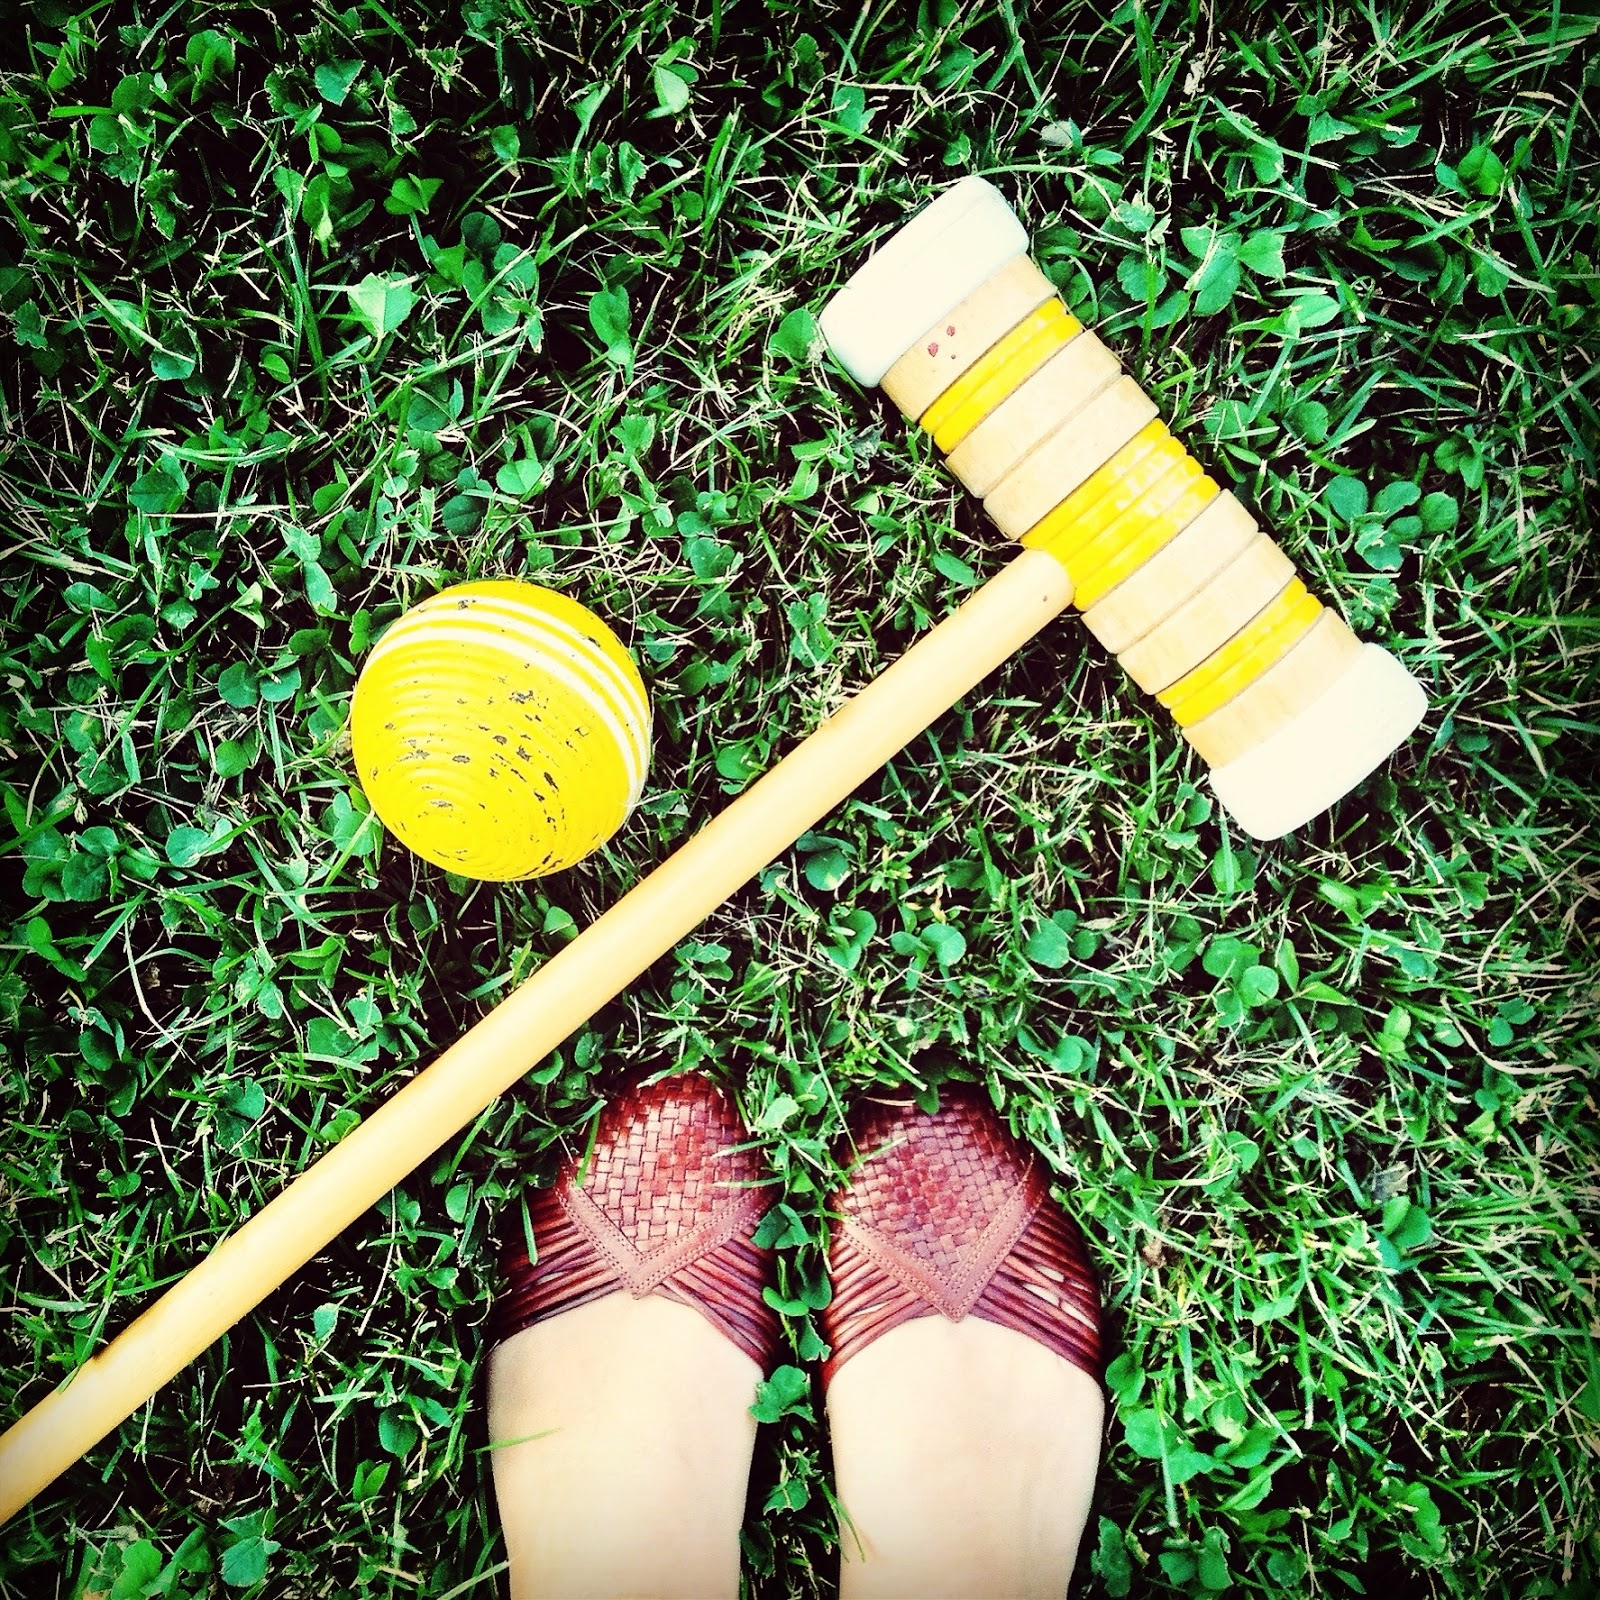 brown shoes woven croquet mallet ball